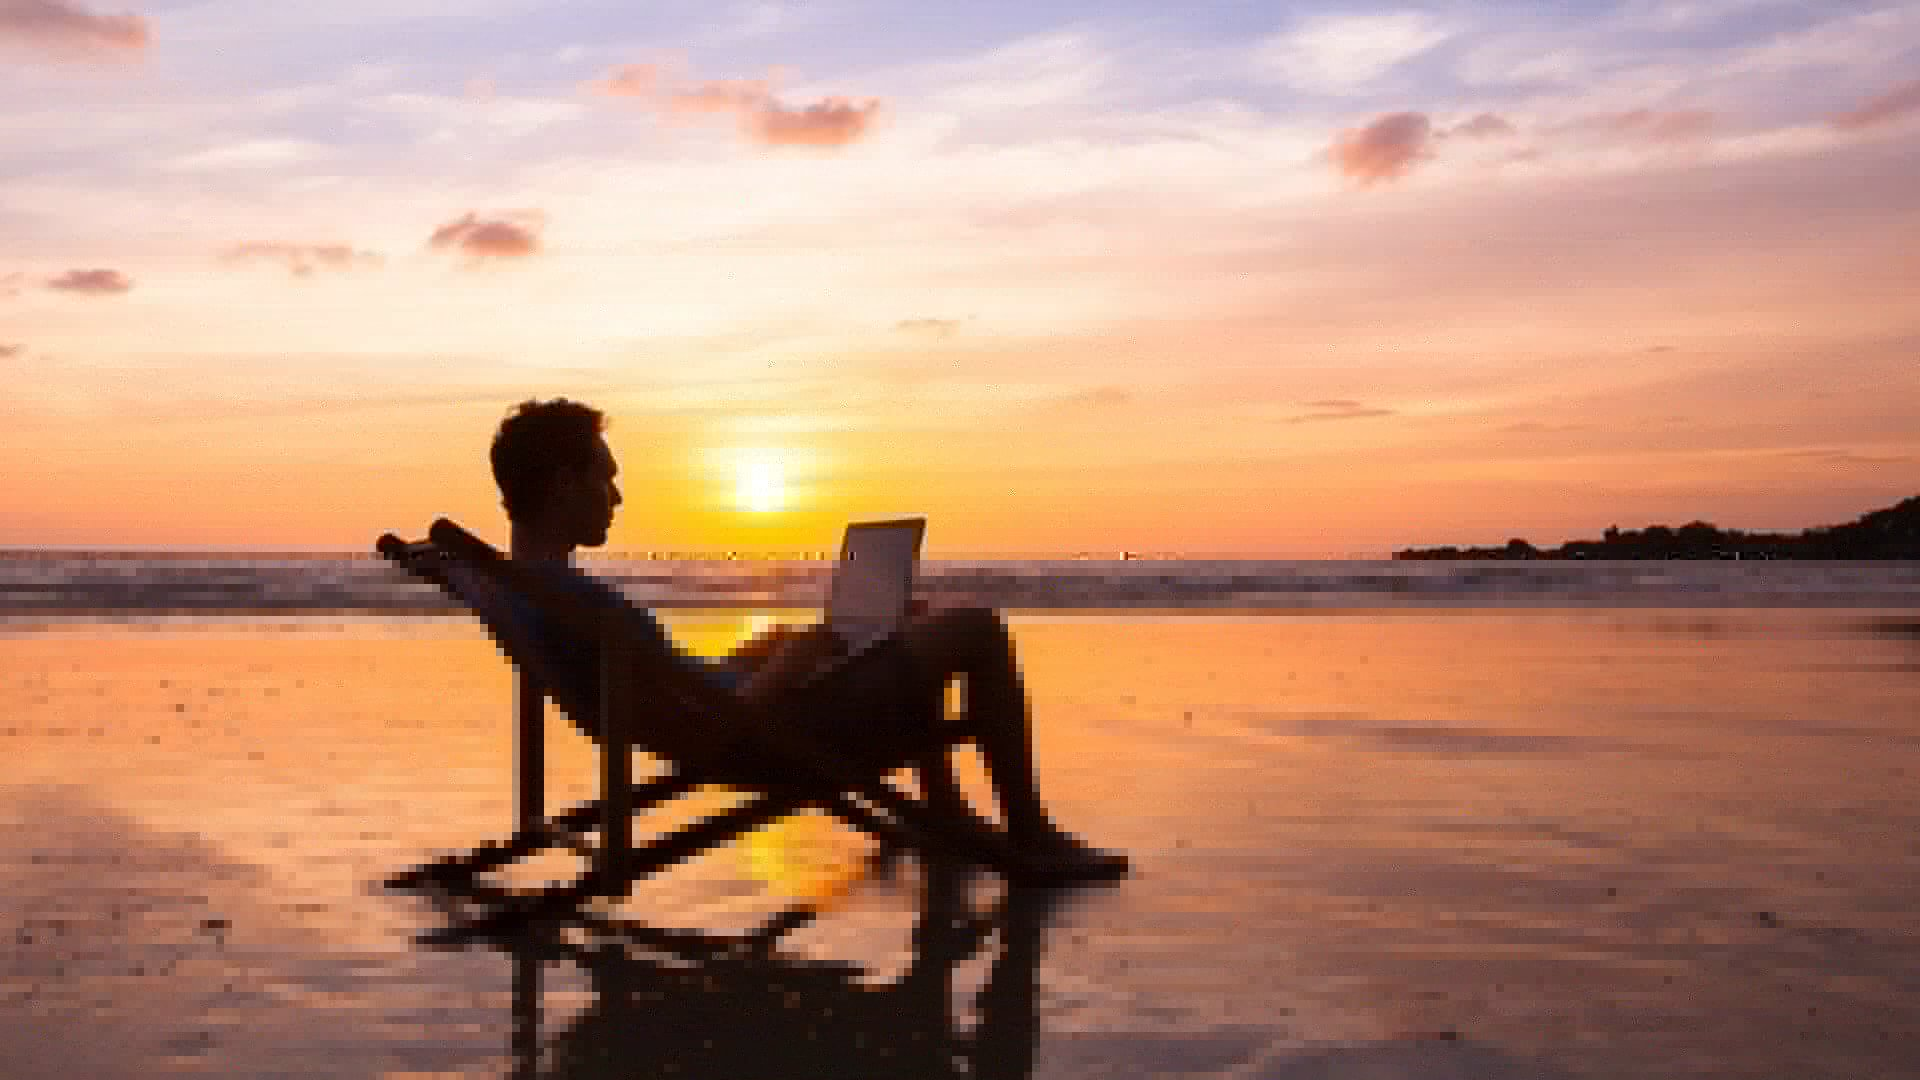 Working Remotely Is All the Rage, but It's Not Right for Every Business